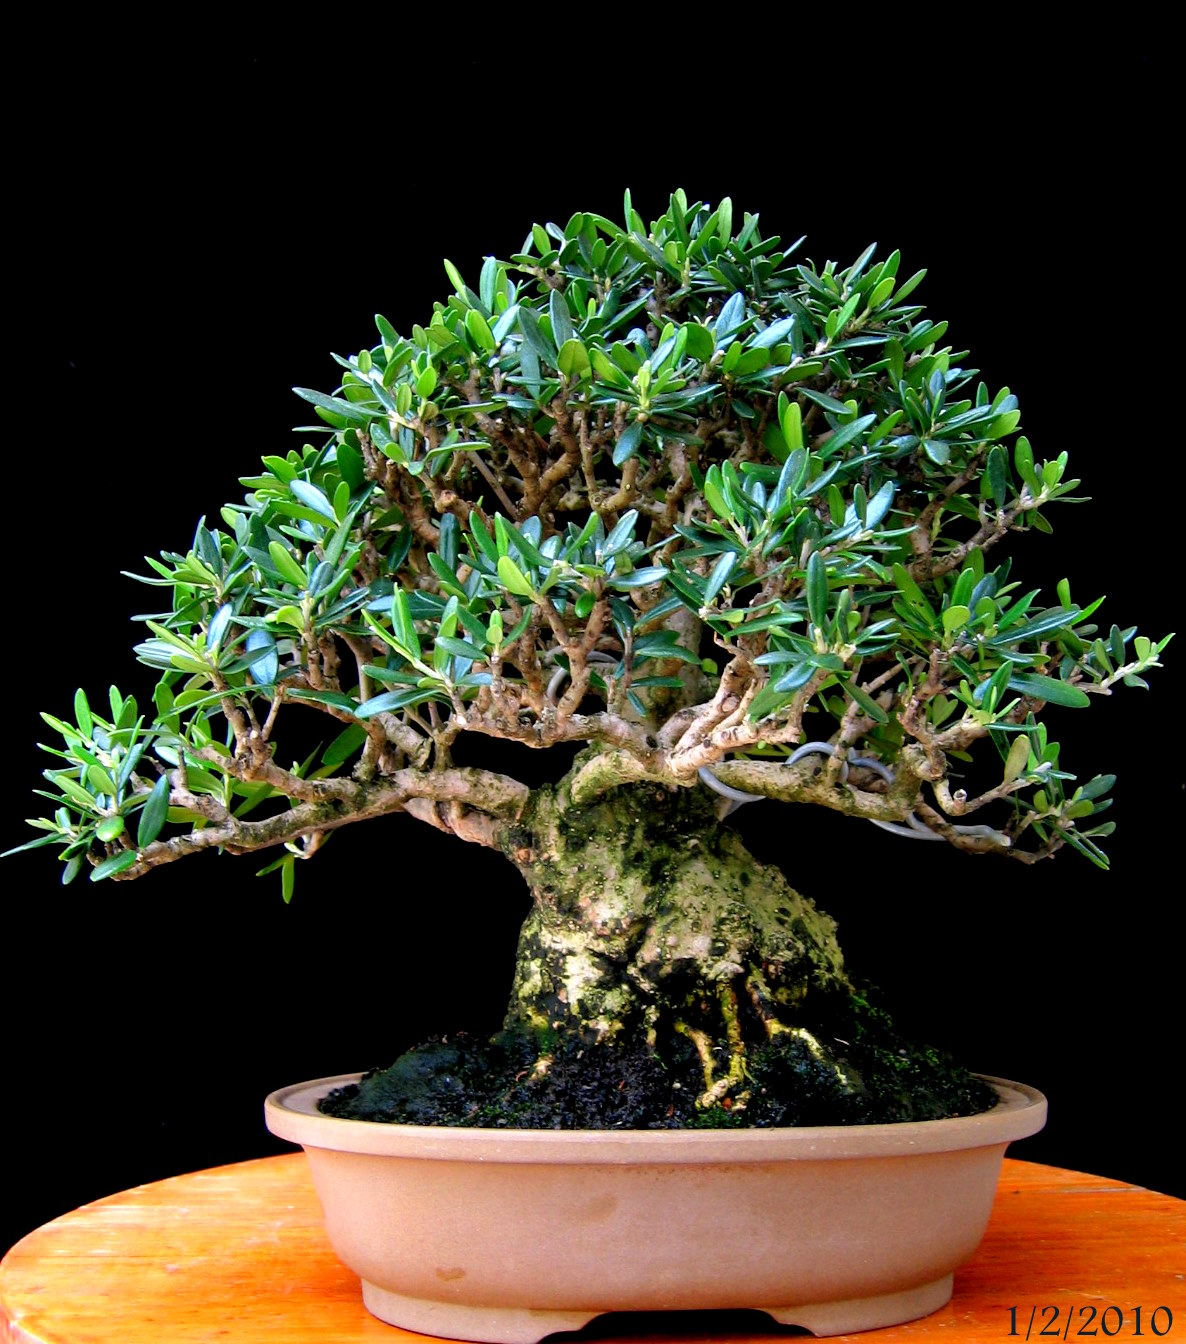 Newzealandteatreebonsai My First Wild Olive Bonsai